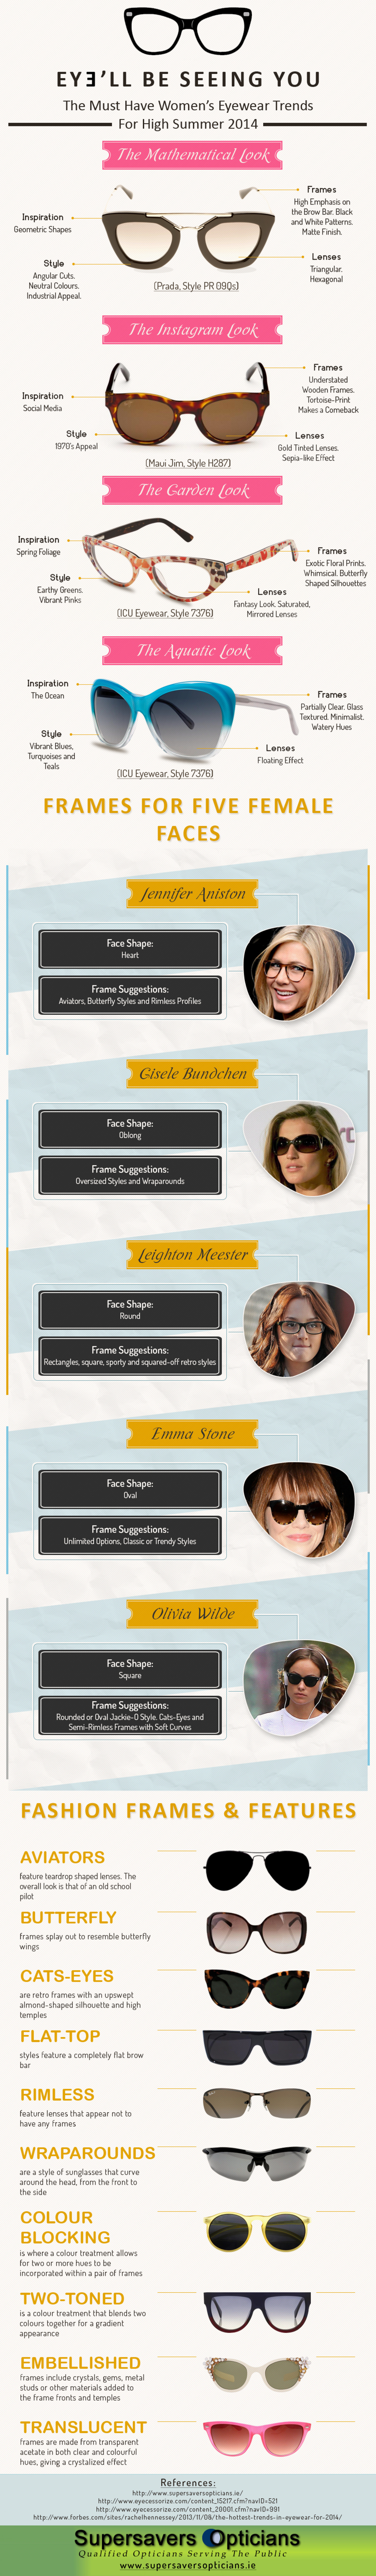 The Must Have Women's Eyewear Trends for High Summer 2014 Infographic